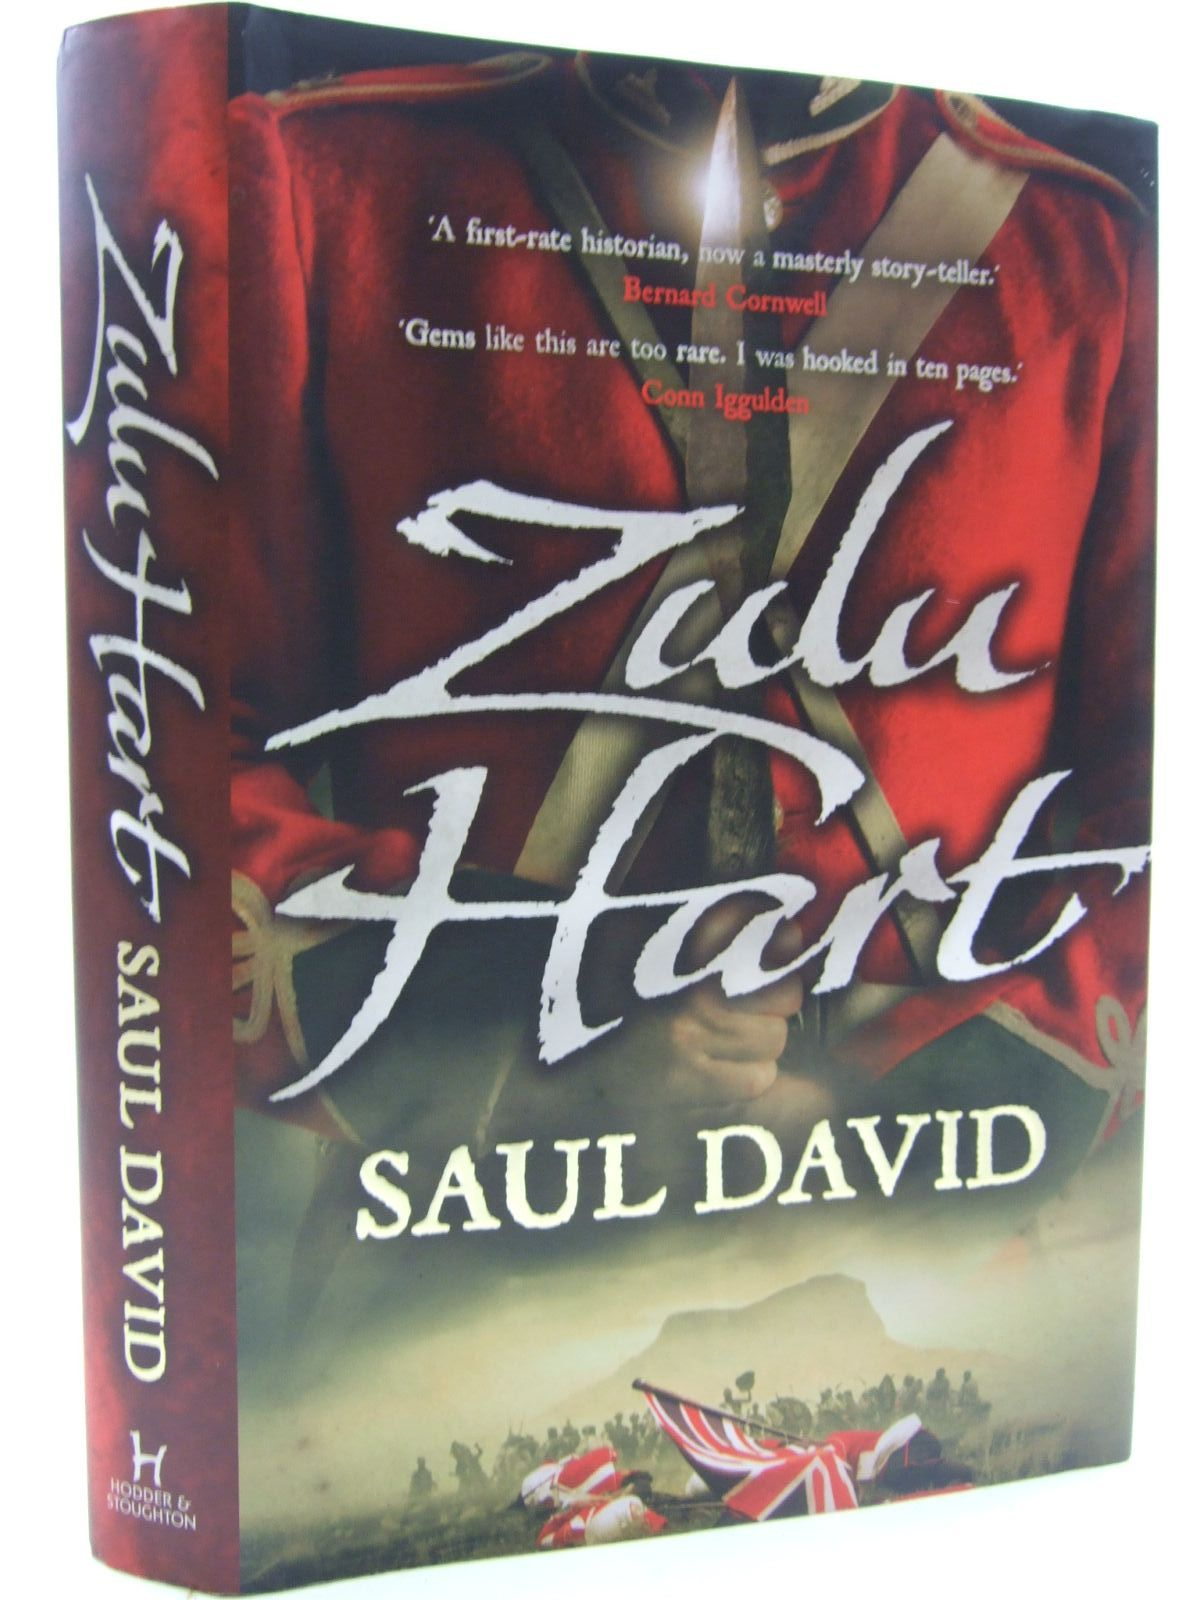 Photo of ZULU HART written by David, Saul published by Hodder & Stoughton (STOCK CODE: 2109809)  for sale by Stella & Rose's Books